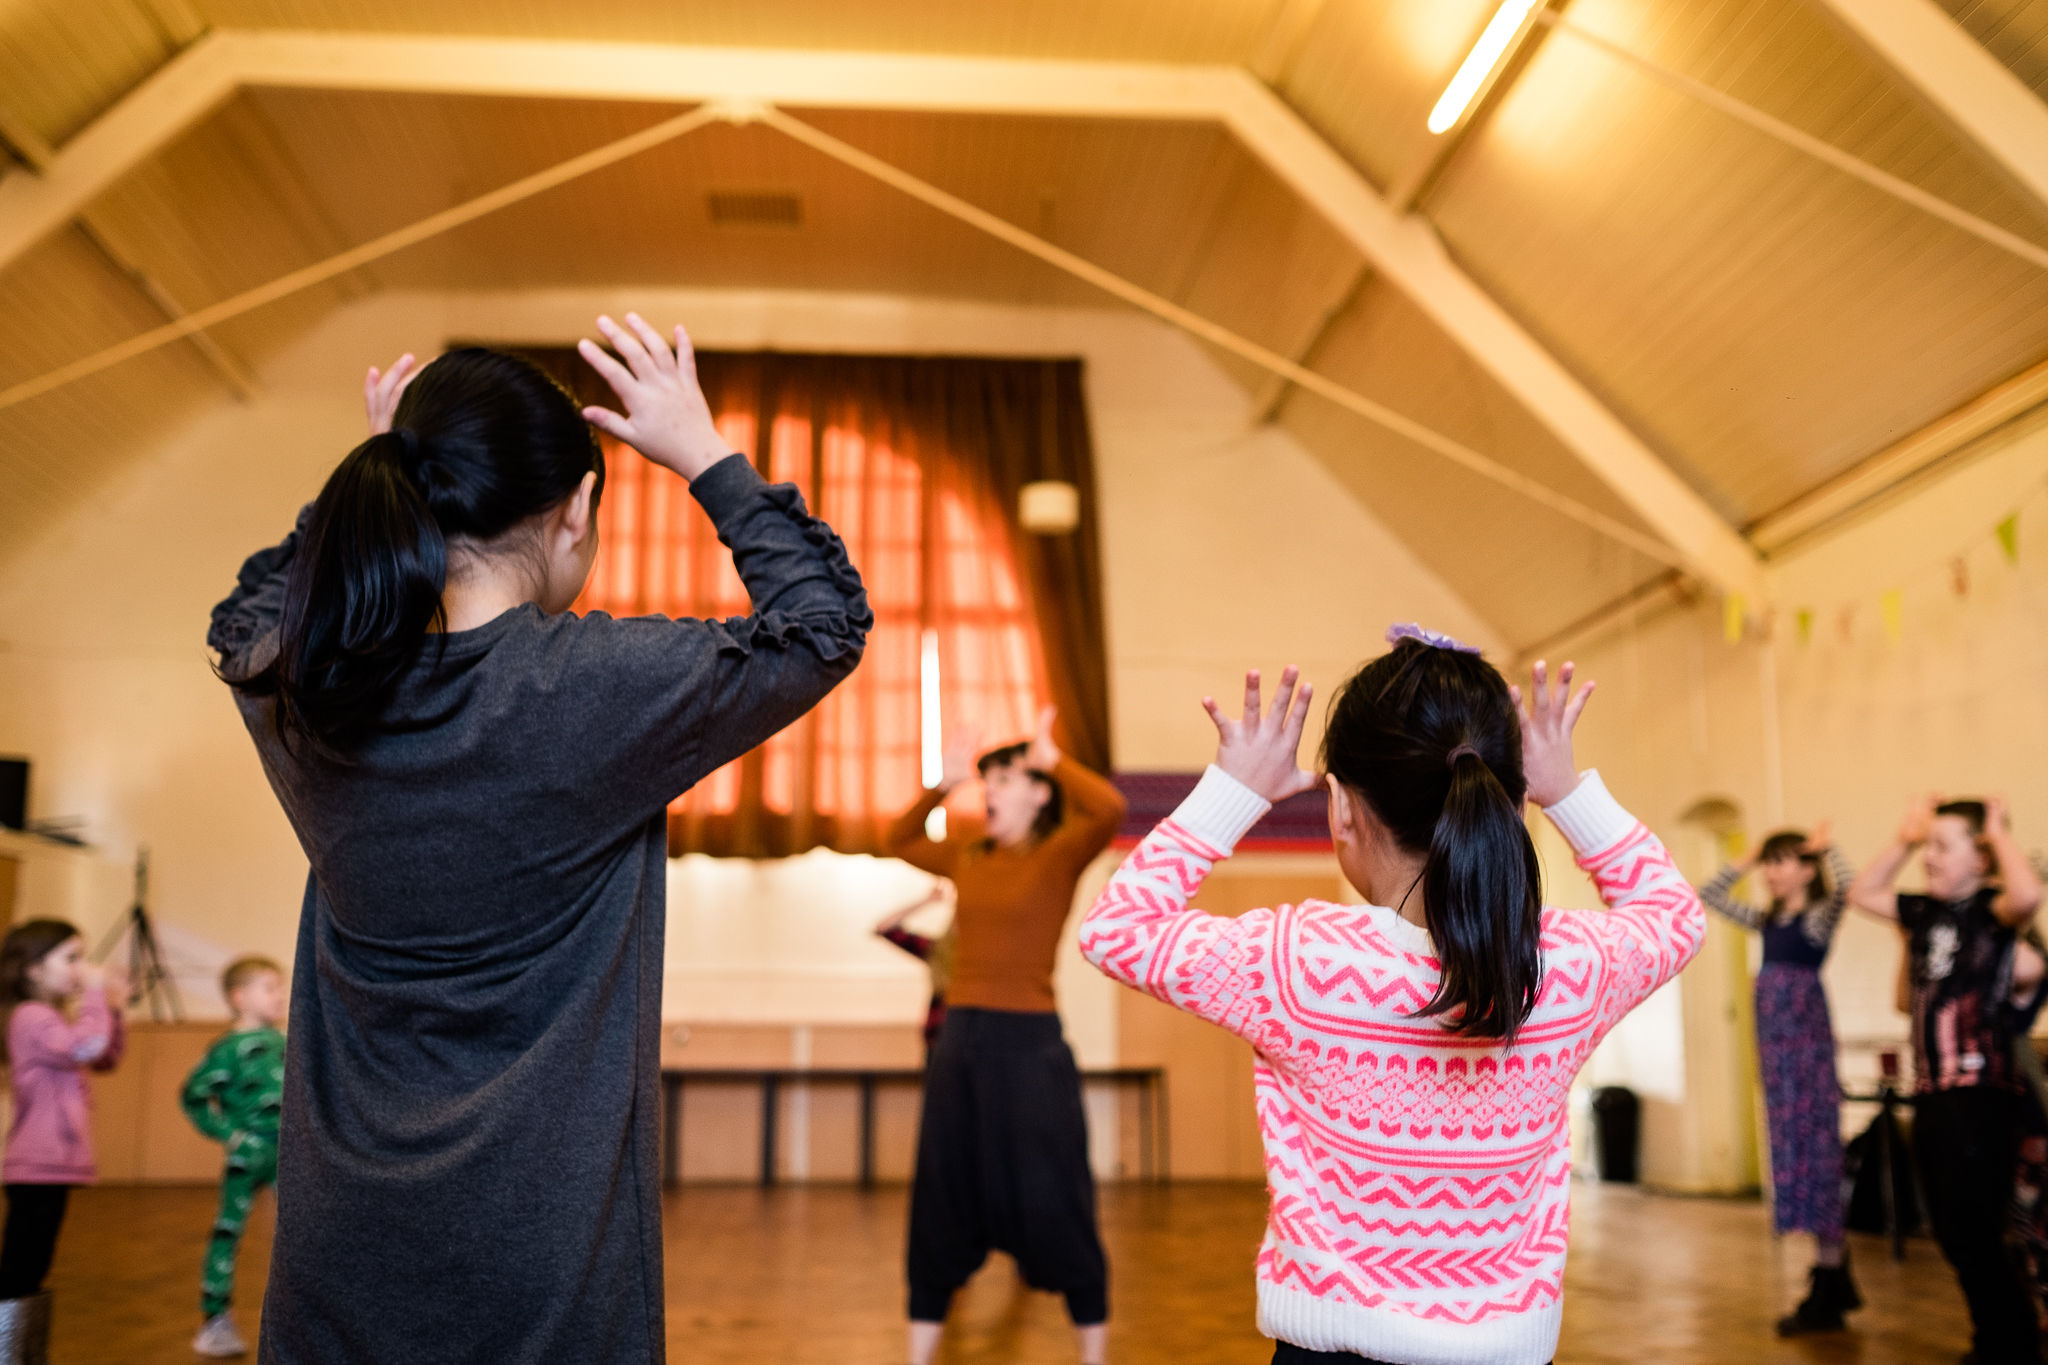 2019.02.09RestokeSmallFolkDanceSingingWorkshop-JennyHarper-10.jpg